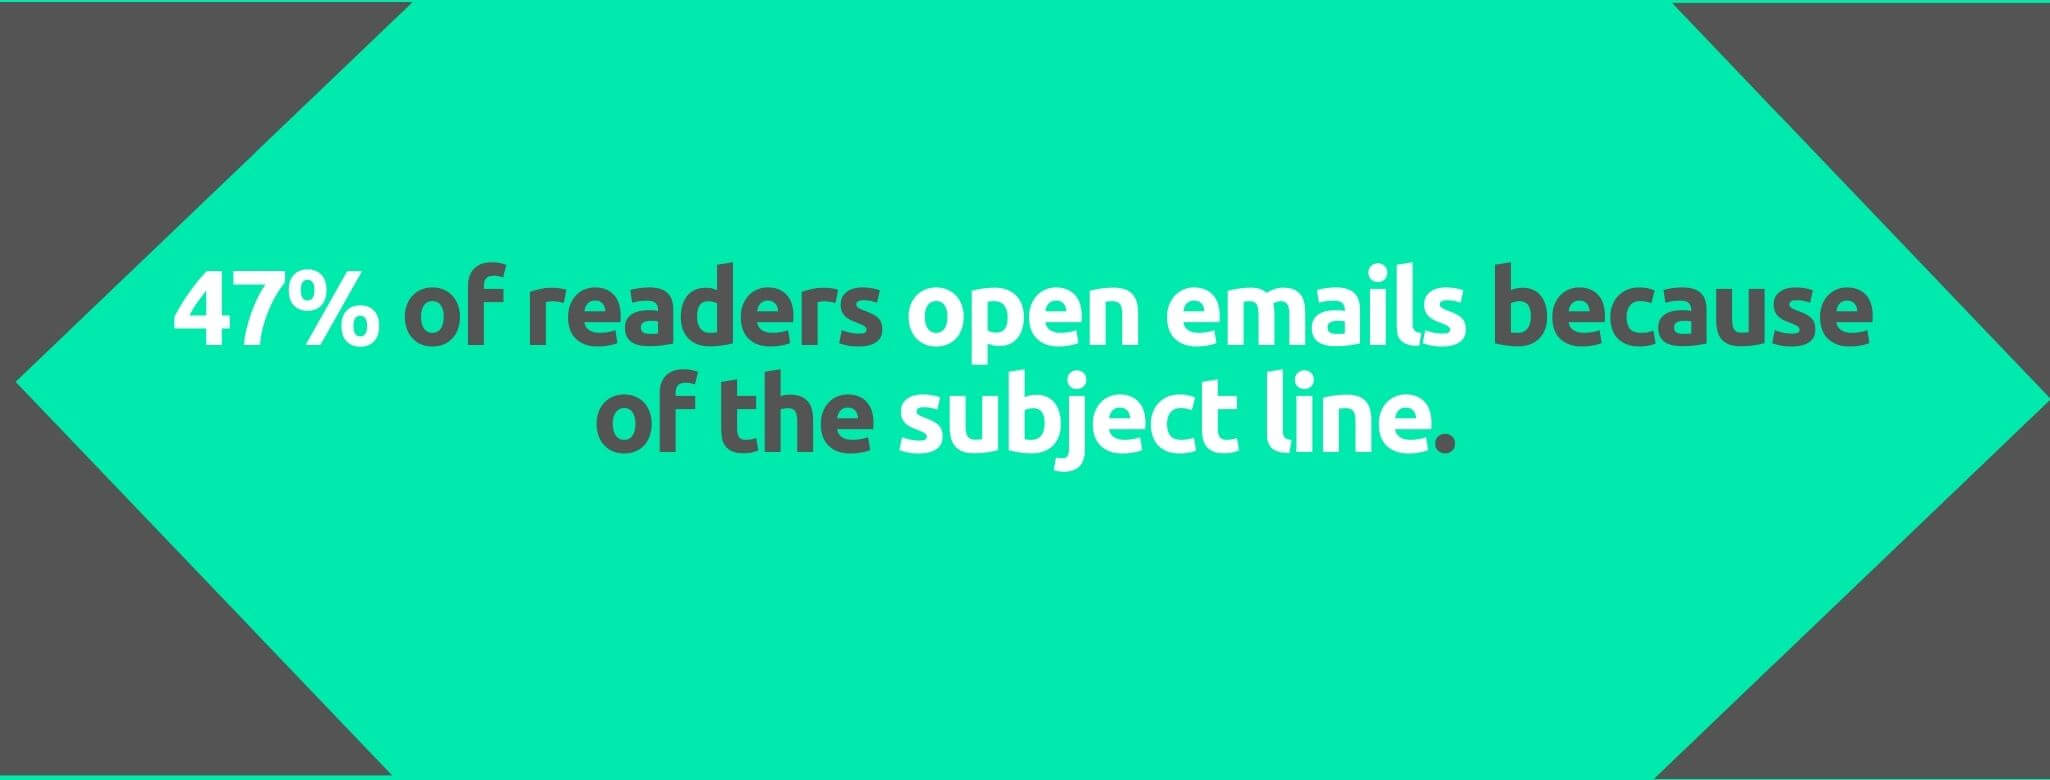 47% of readers open emails because of the subject line - 80+ Email Marketing Stats - Replyco Helpdesk Software for eCommerce